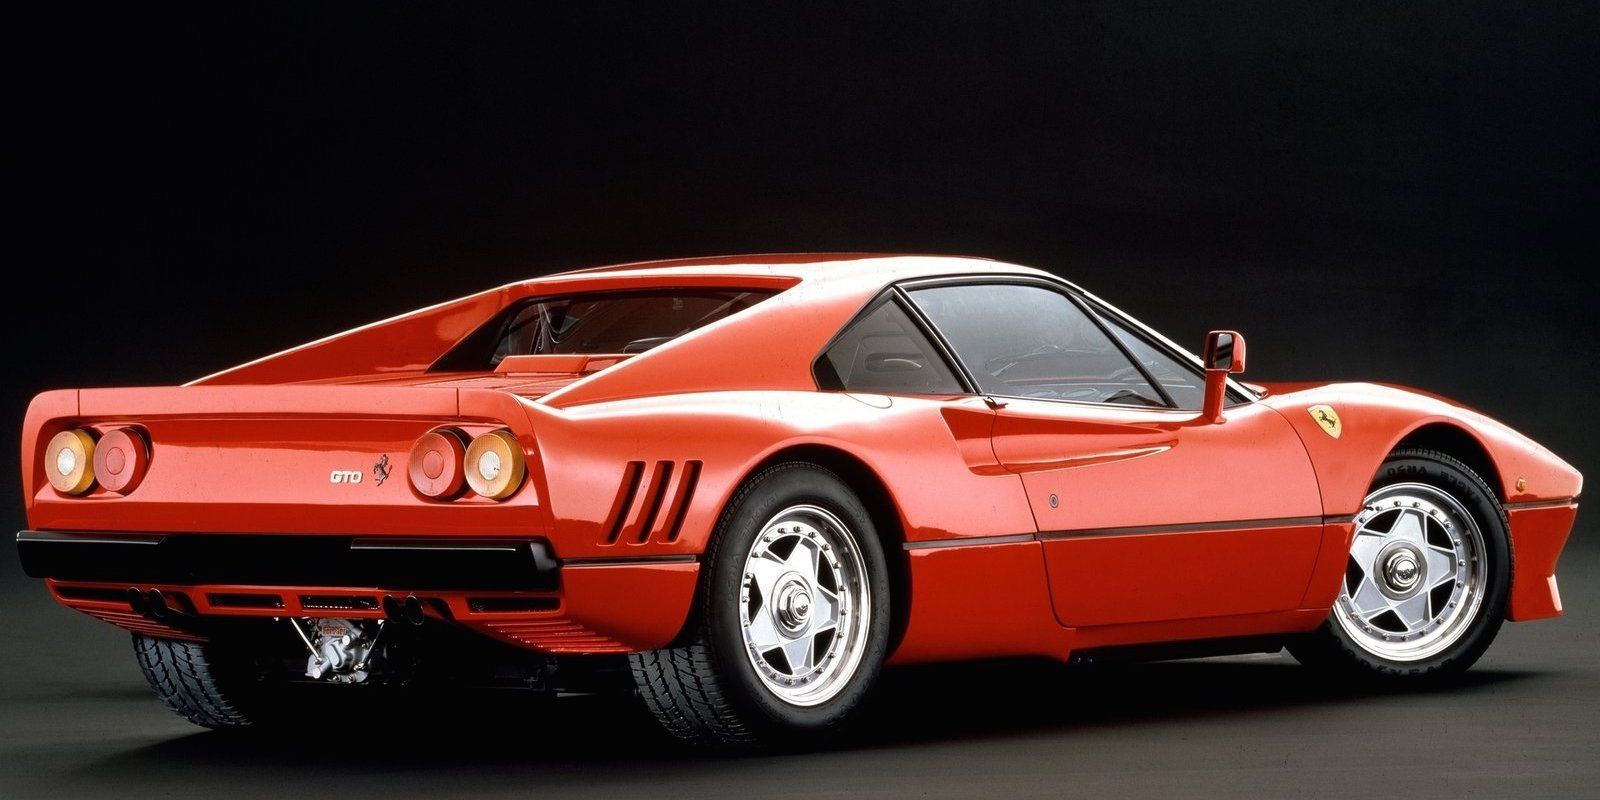 "<p>The <a href=""http://www.roadandtrack.com/car-culture/features/a7304/sam-smith-on-ferrari-288-gto/"" target=""_blank"">288 GTO</a> picks up where the 308 leaves off. Ferrari wanted to enter this car in Group B rally, but the series was cancelled before the 288 GTO reached a dirt stage. We still got a hell of a road car out of it, though.</p>"